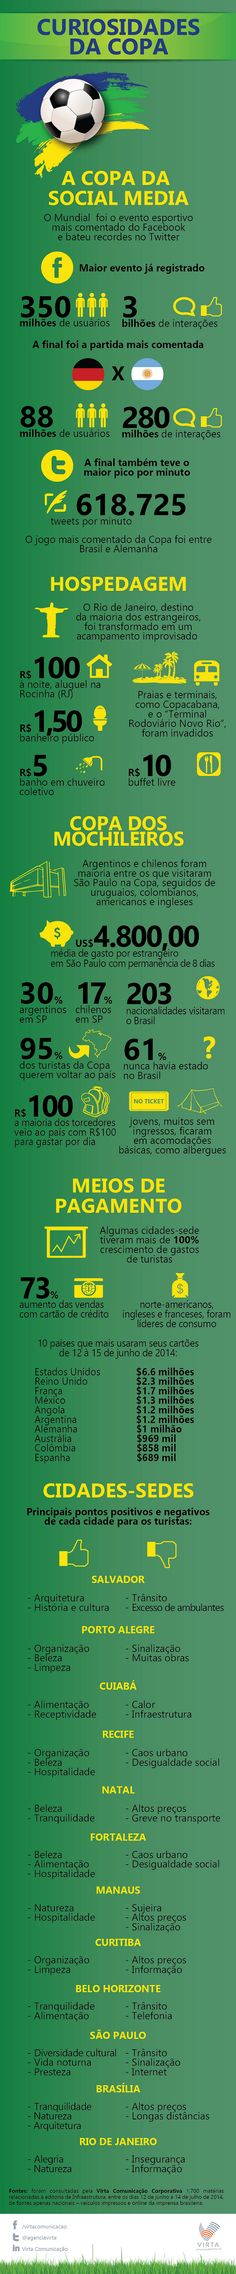 62 best infogrficos e commerce images on pinterest social media infogrfico rene curiosidades da copa a agncia virta comunicao corporativa avaliou 1700 matrias de fandeluxe Images